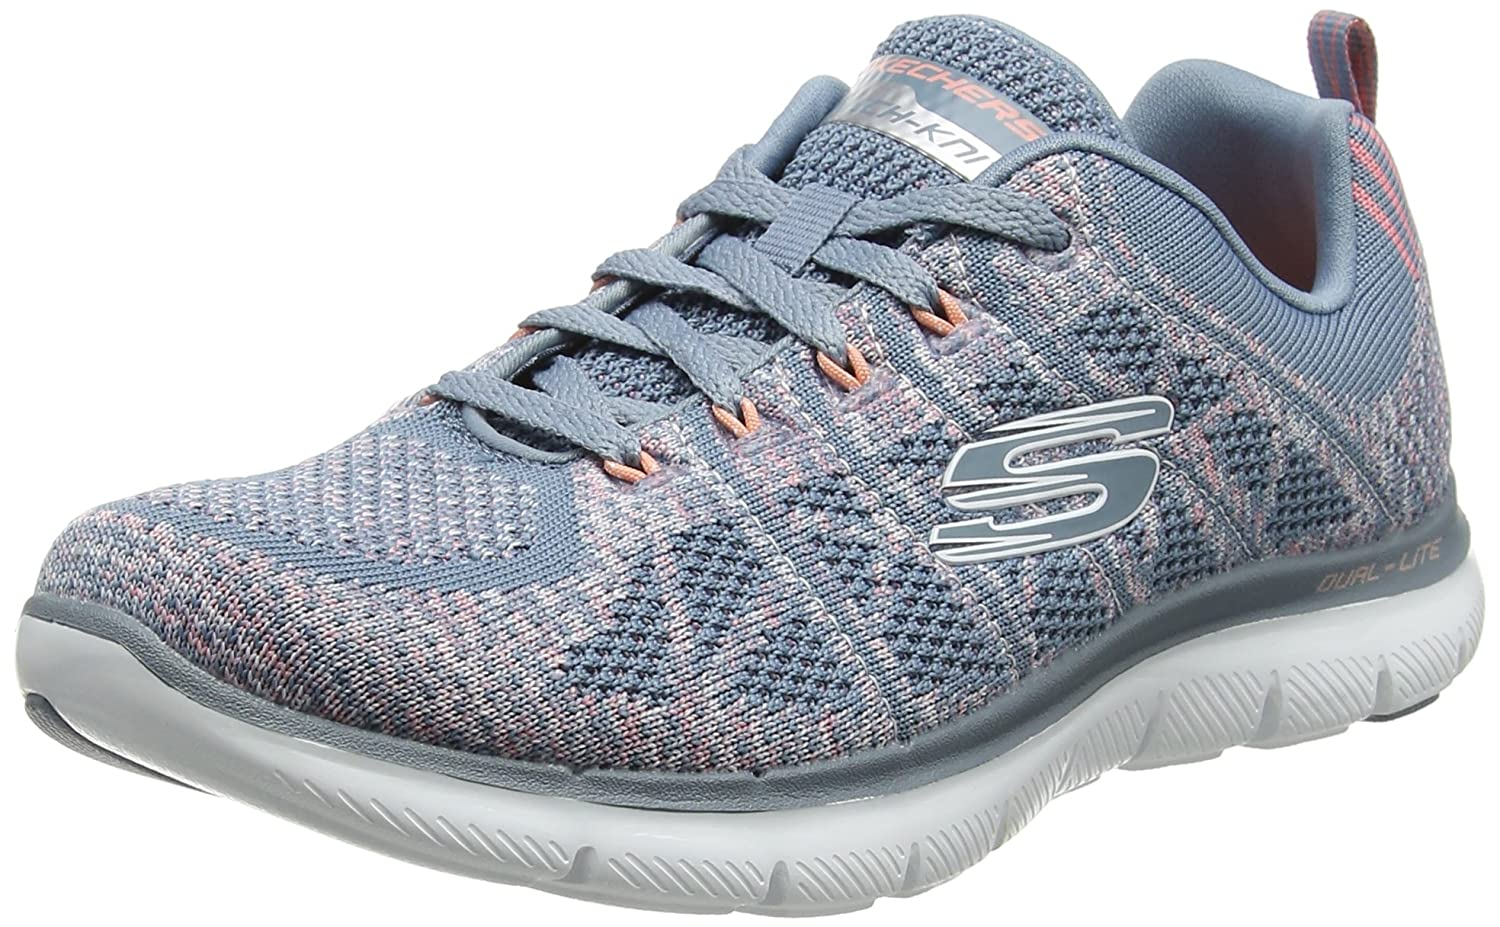 Skechers Women's Flex Appeal 2.0-New Gem Sneaker B078JKSS2Q 5.5 B(M) US|Slate